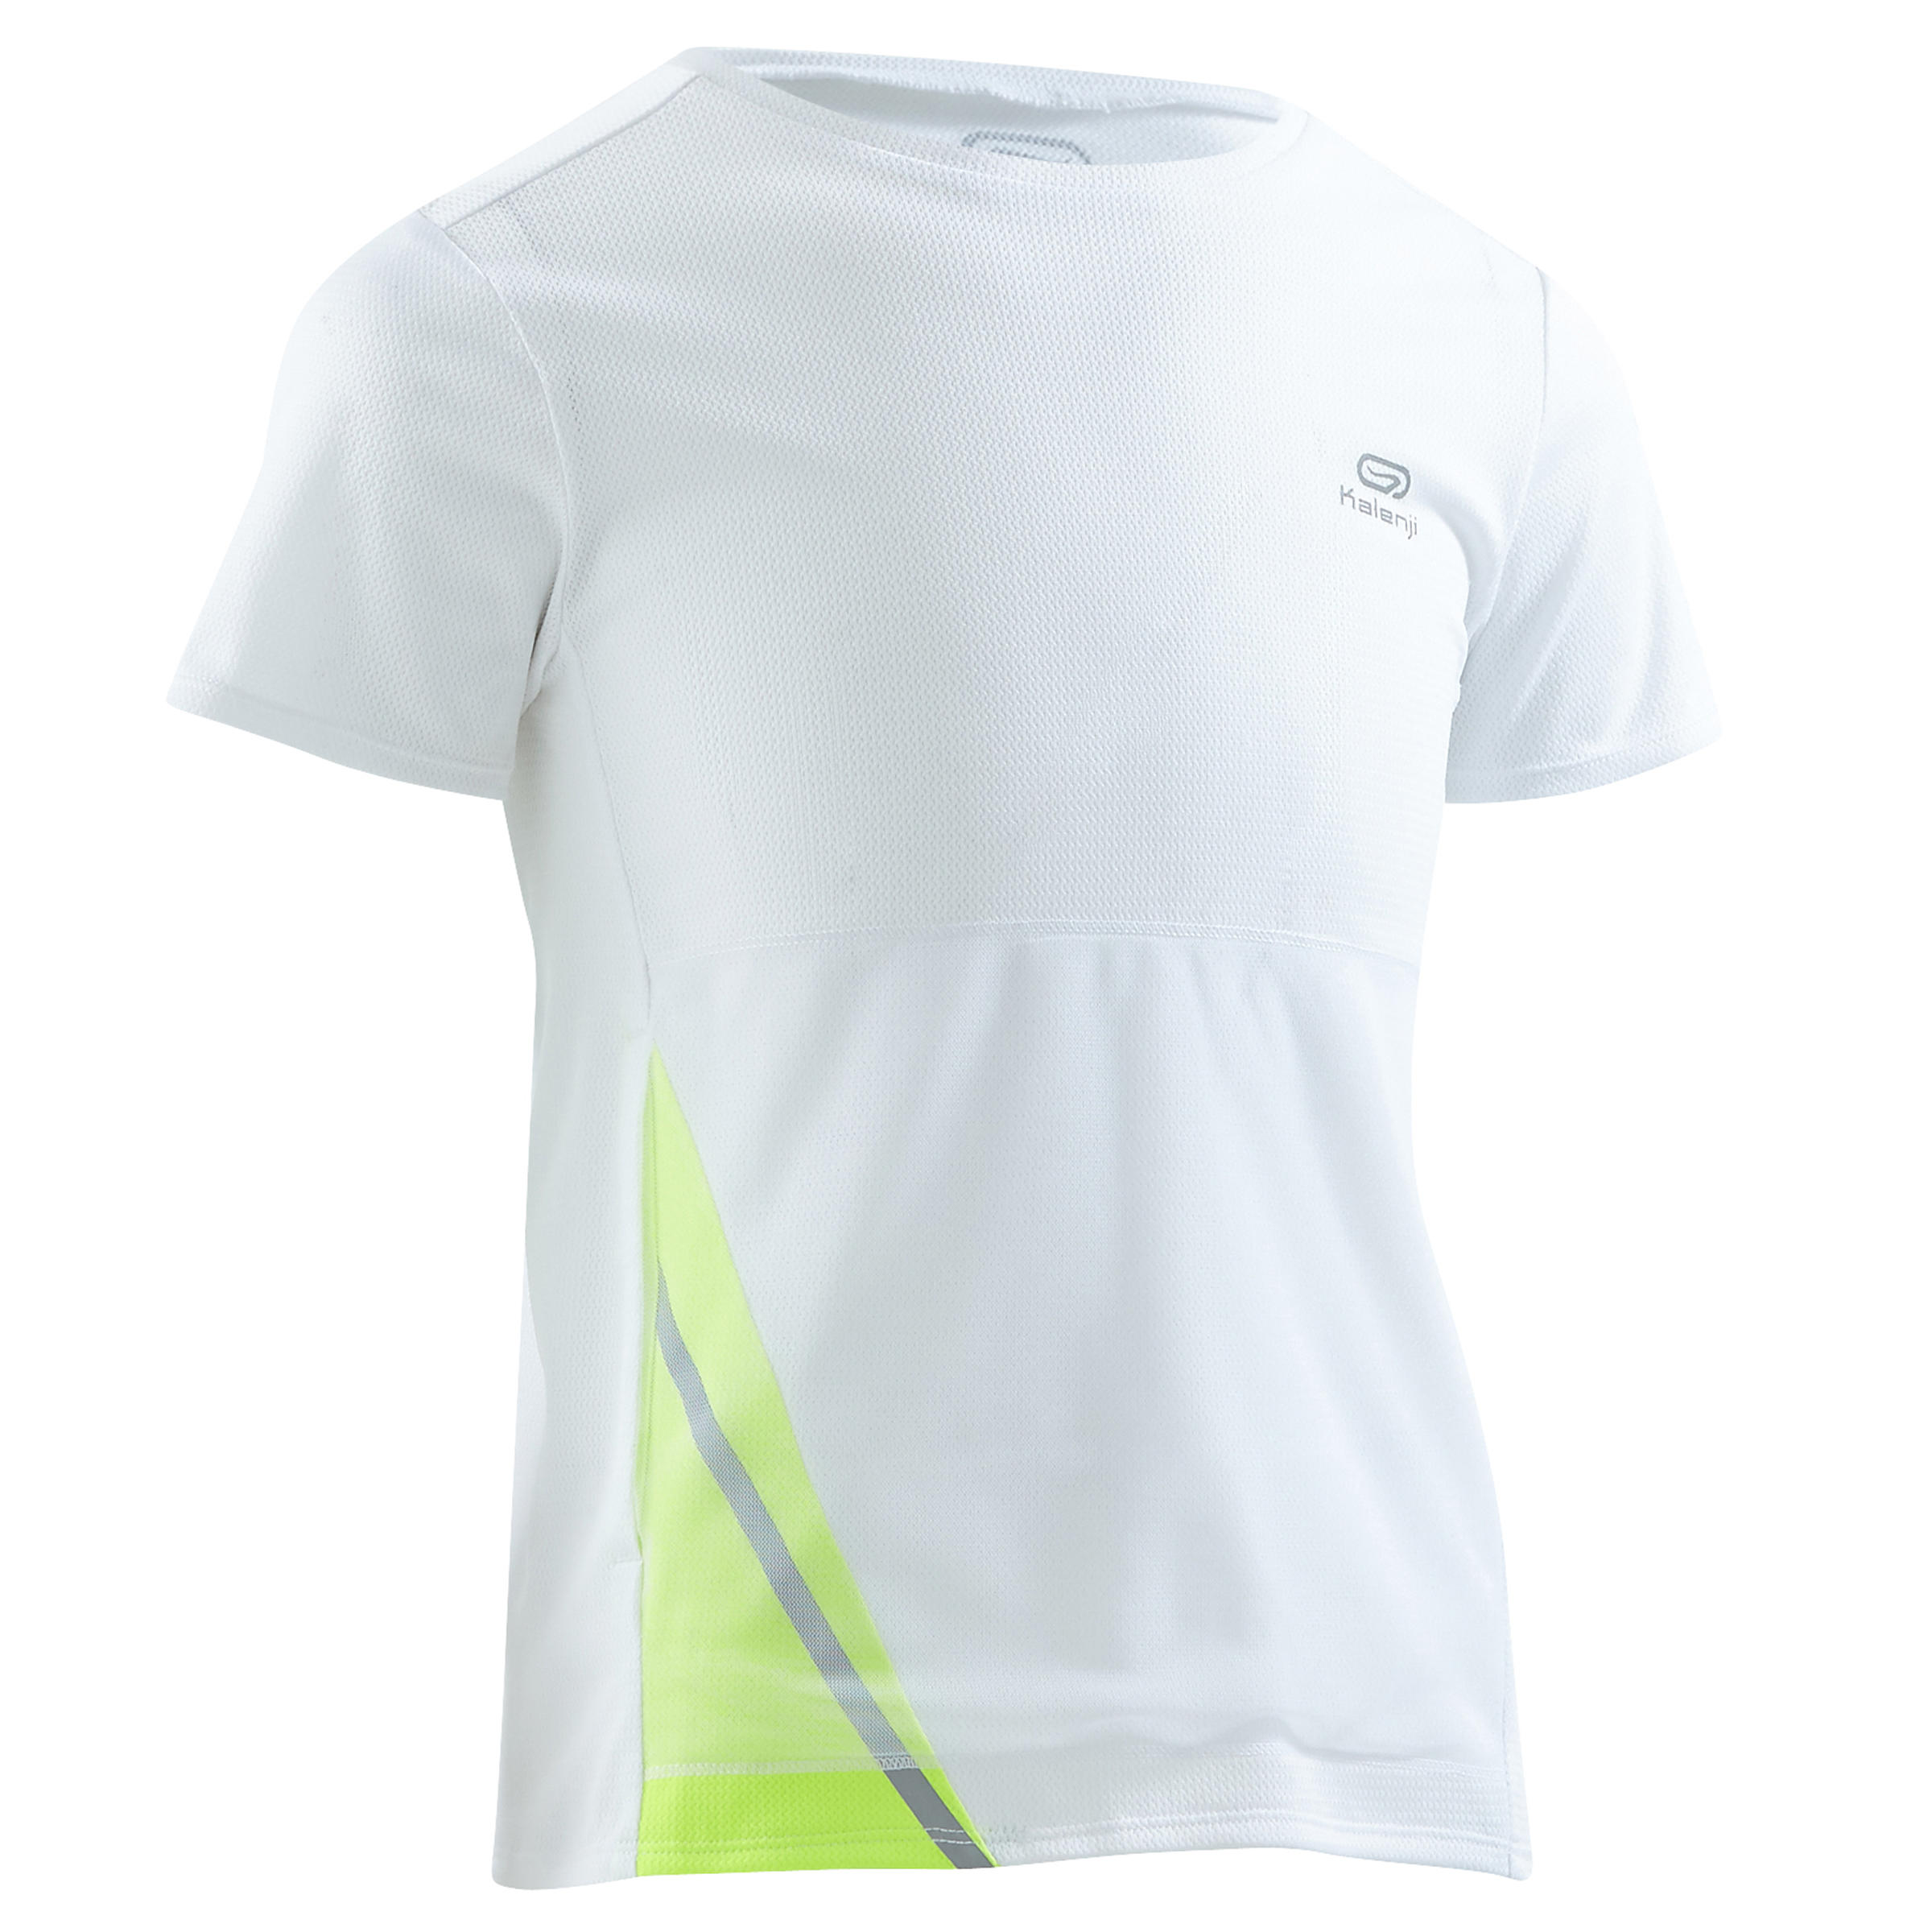 PLAYERA ATLETISMO NIÑOS RUN DRY DORSAL BLANCO